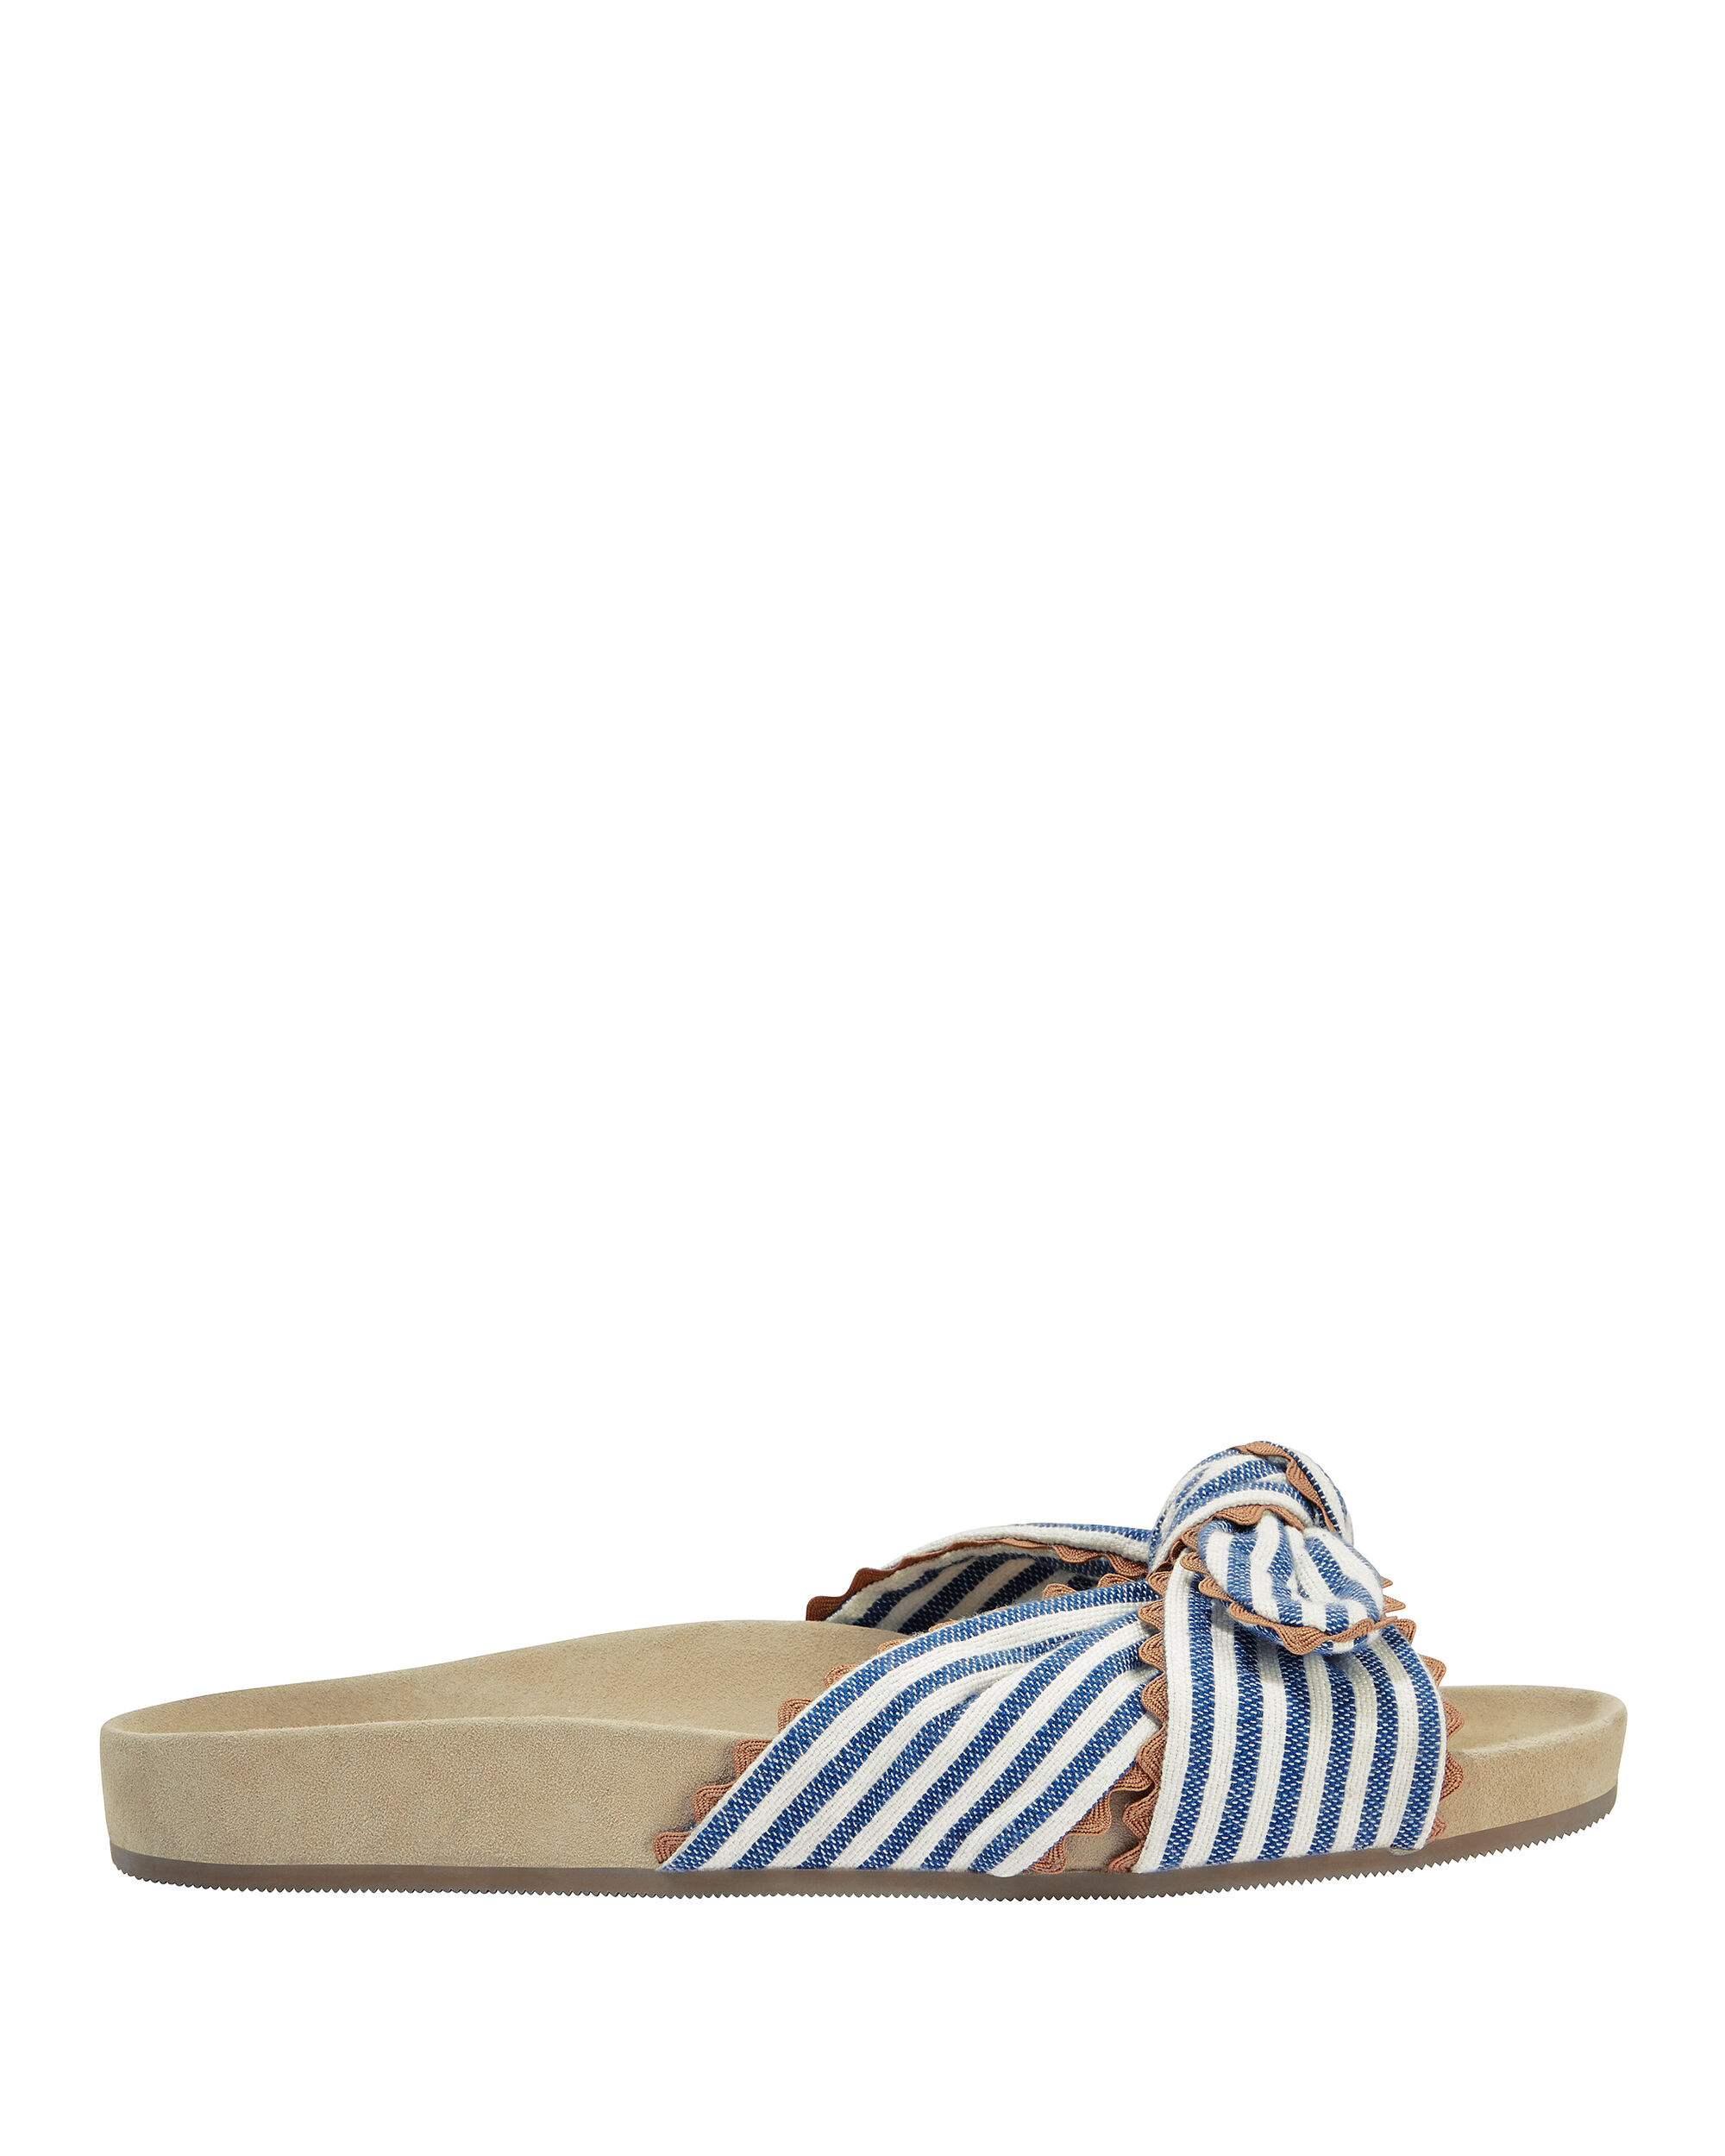 Beattie Bow-Detailed Striped Canvas Slides in Blue